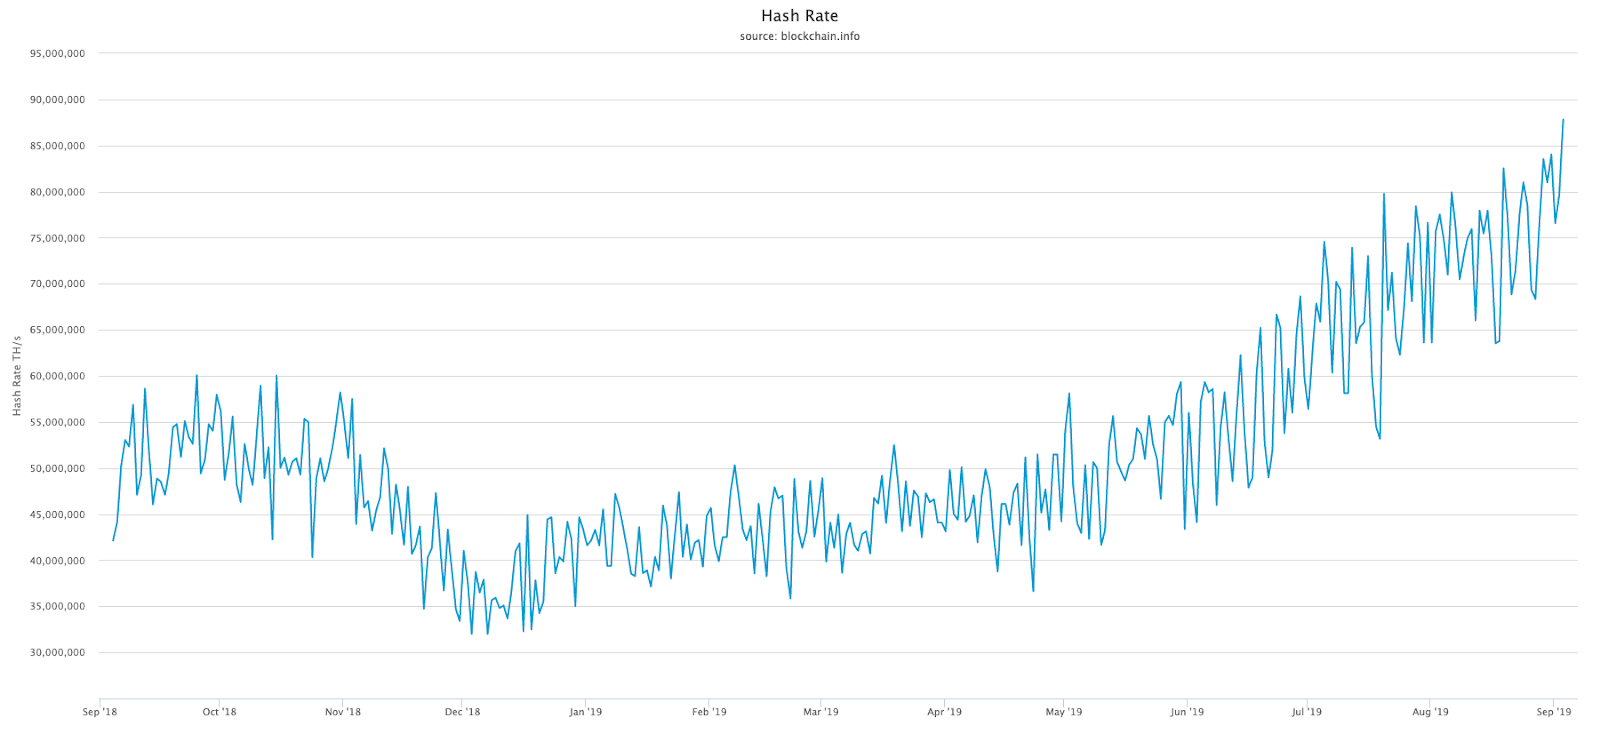 Bitcoin hash rate over the past year